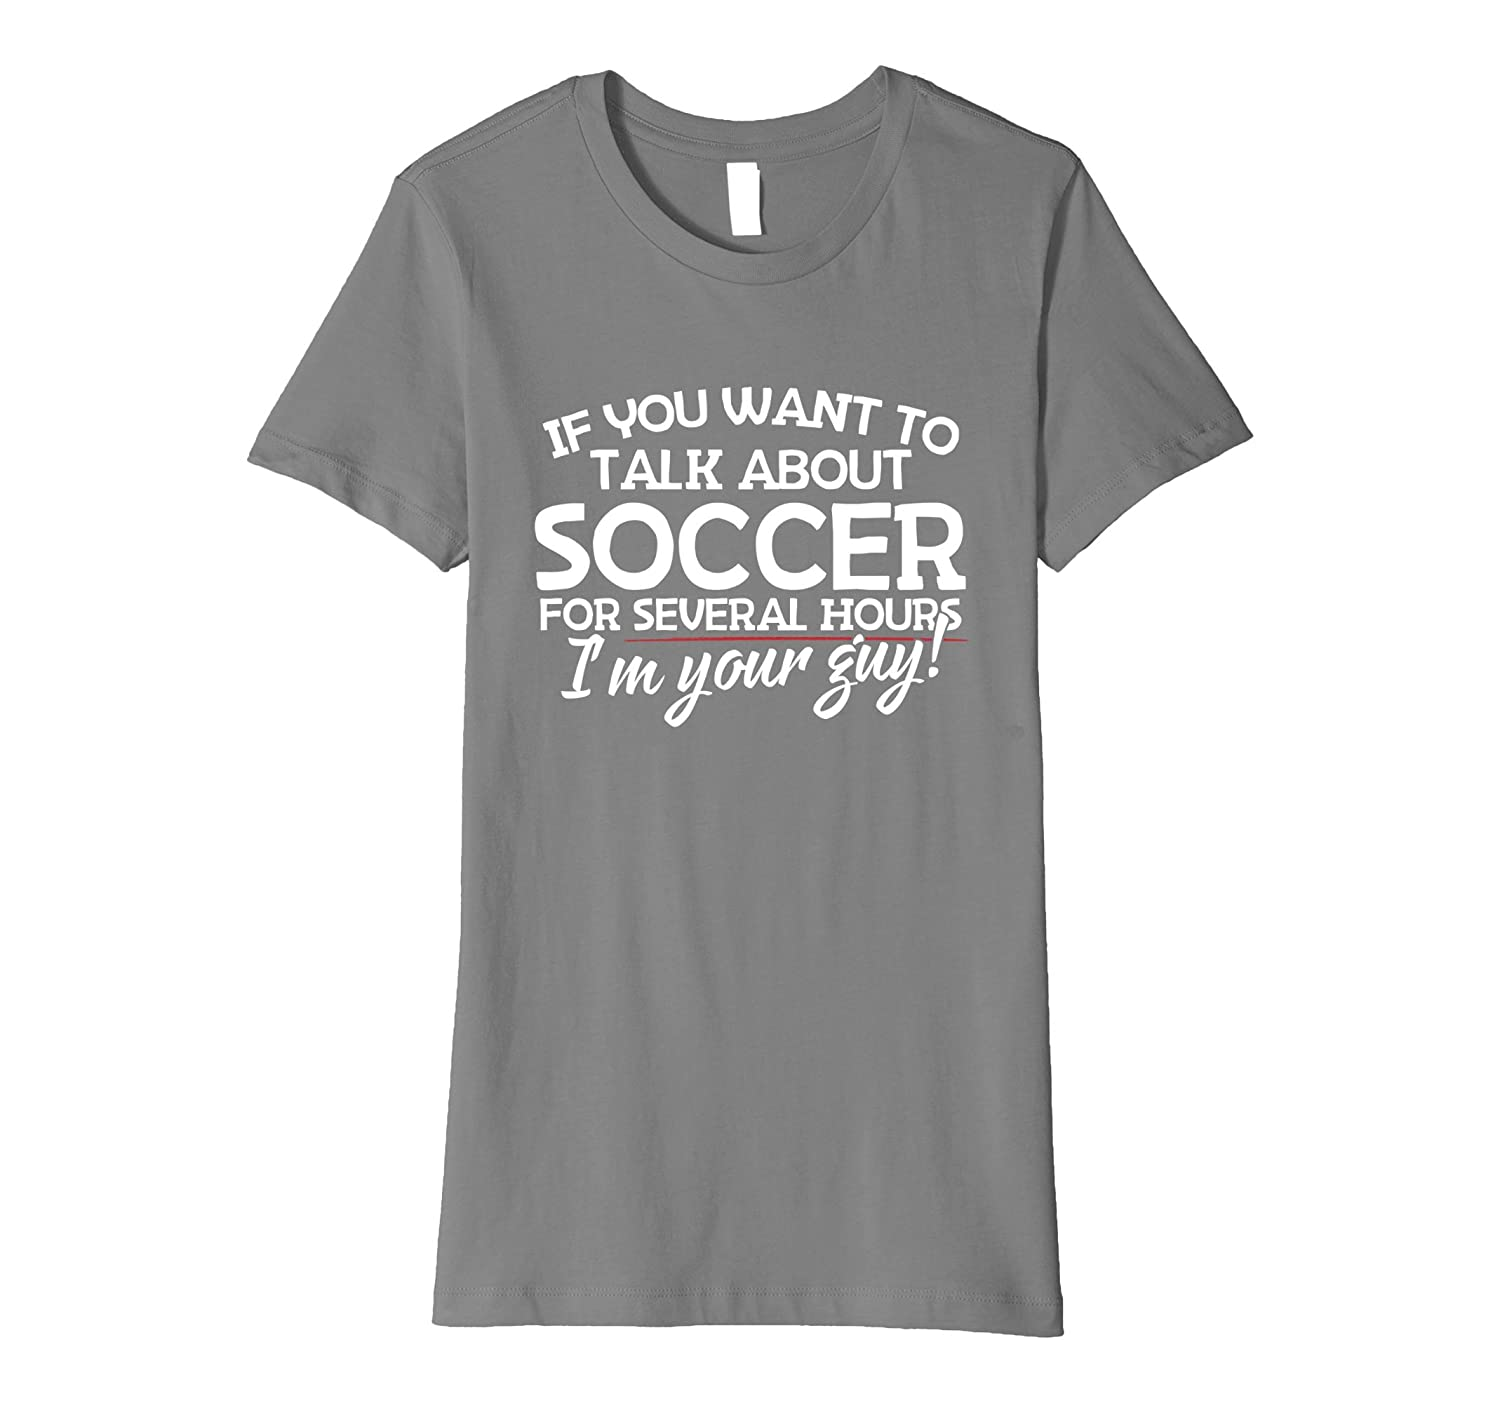 Premium T-shirt for Soccer Lovers Players and Coaches